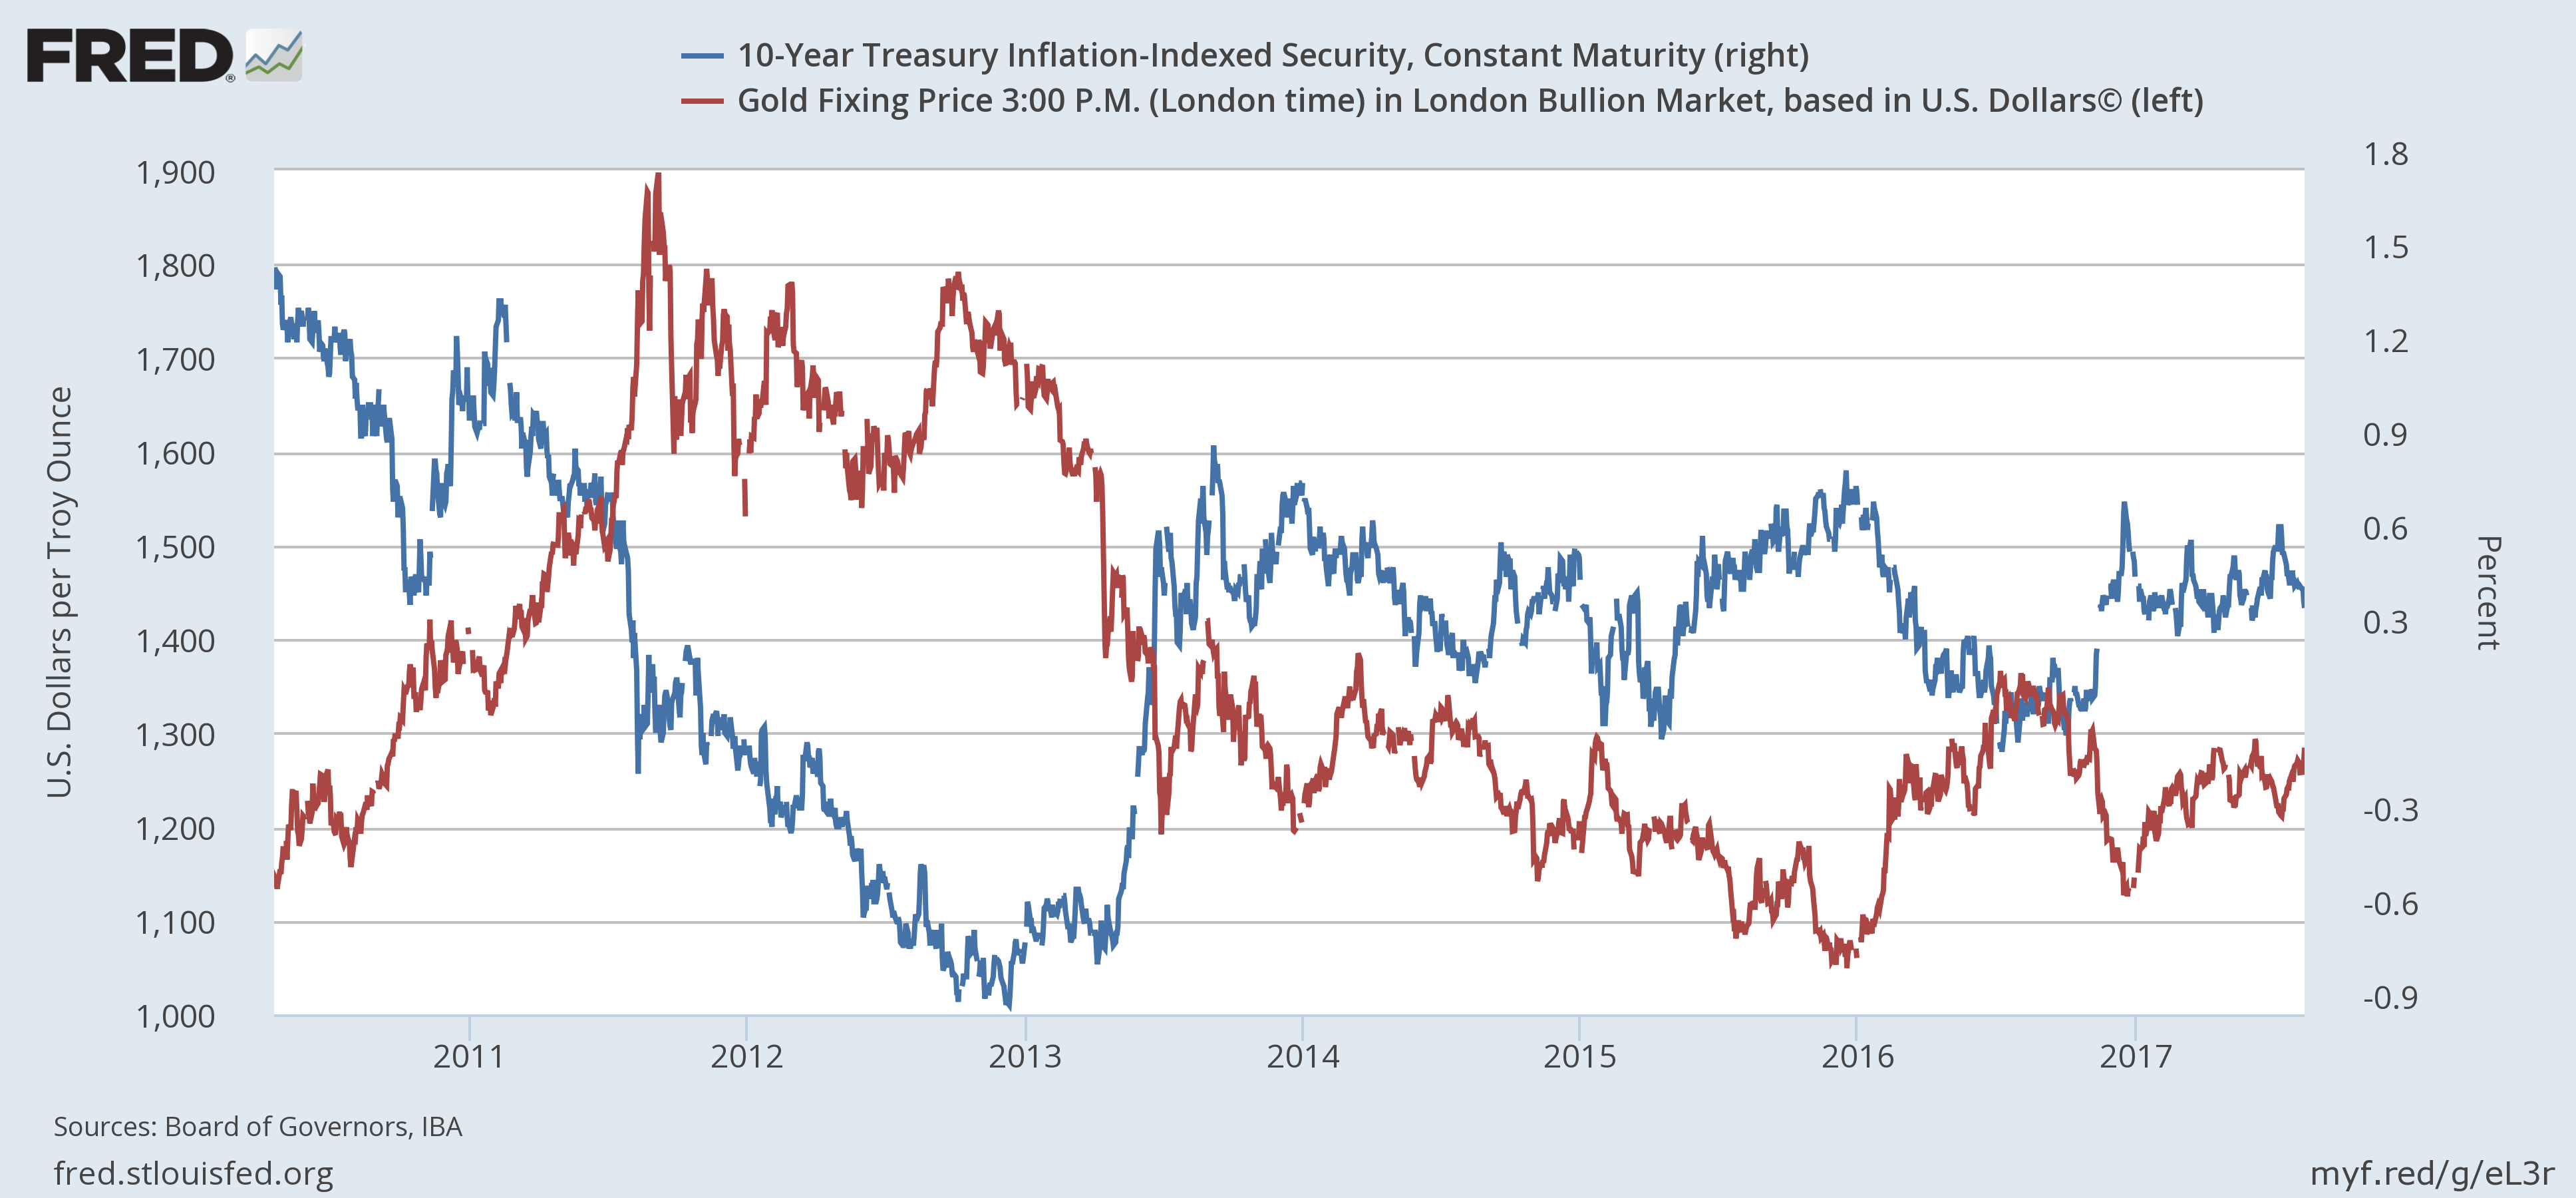 US 10 Year Treasury Inflation-Indexed Security, 2008 - 2017